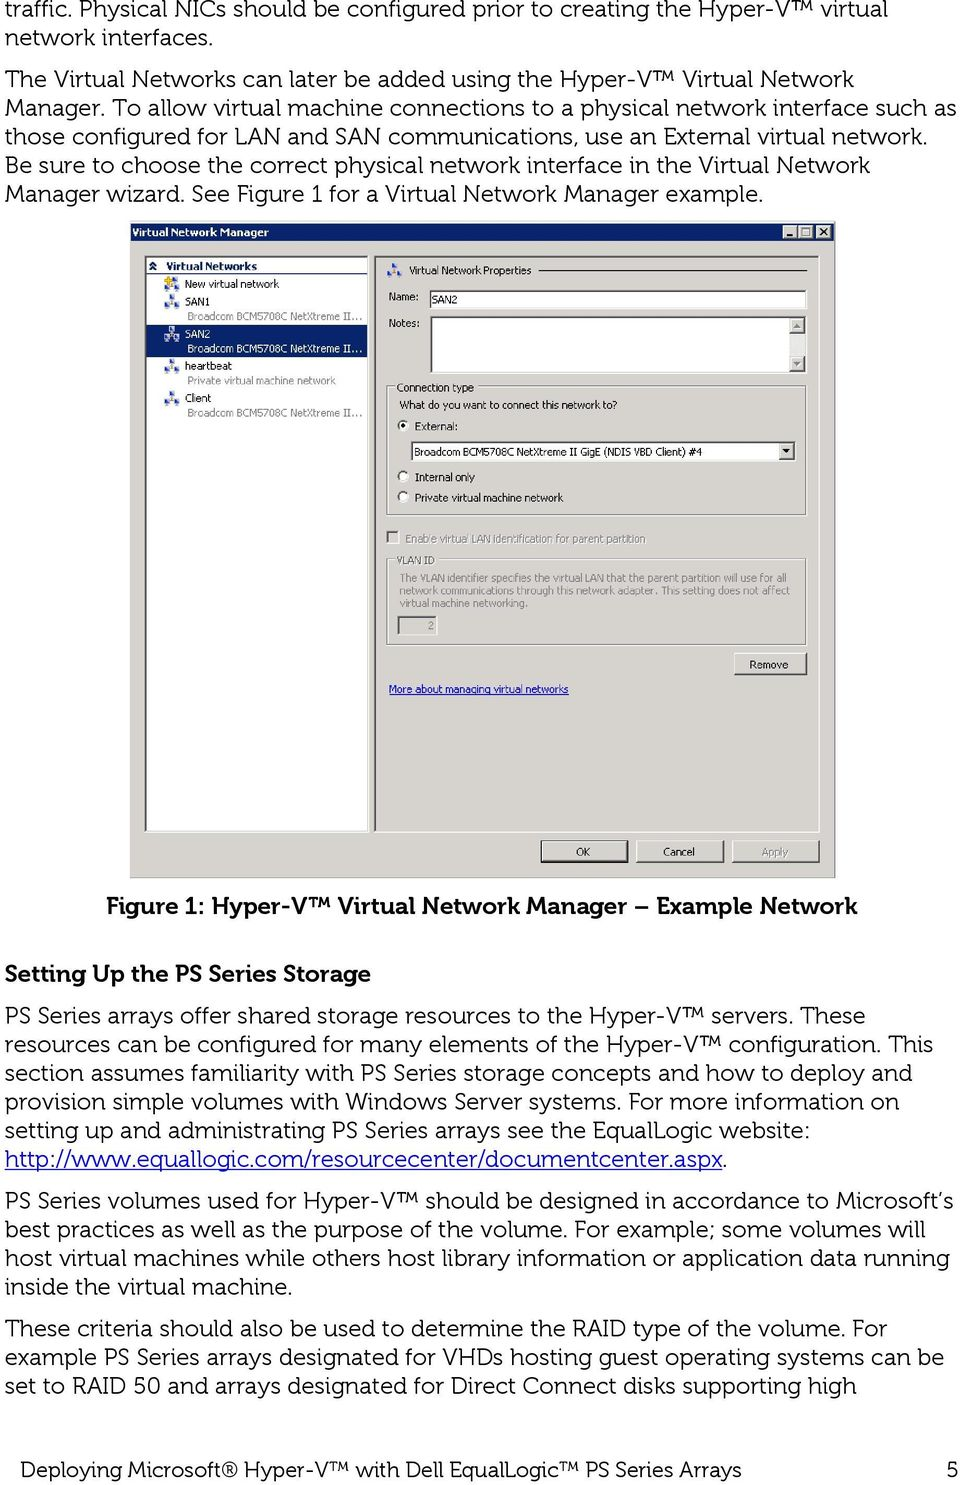 Be sure to choose the correct physical network interface in the Virtual Network Manager wizard. See Figure 1 for a Virtual Network Manager example.